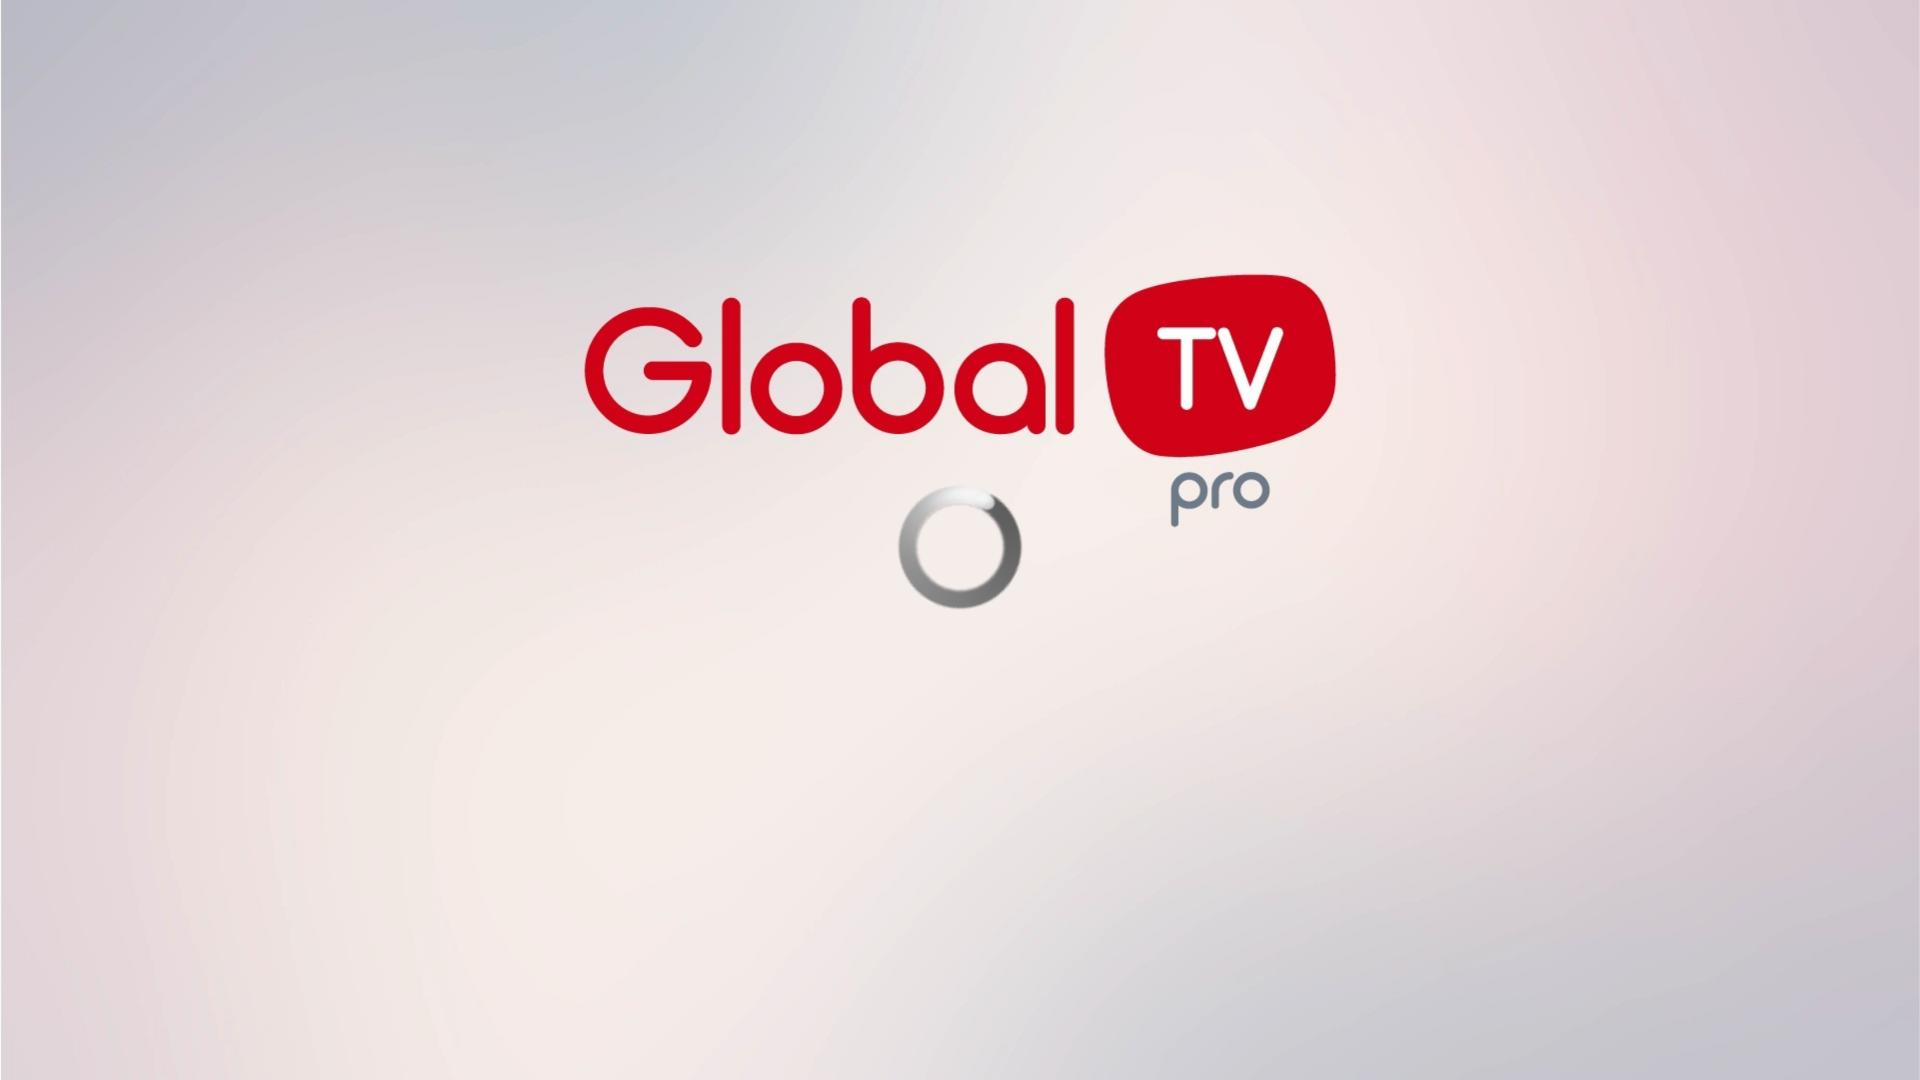 Global-Tv Pro for Android - APK Download